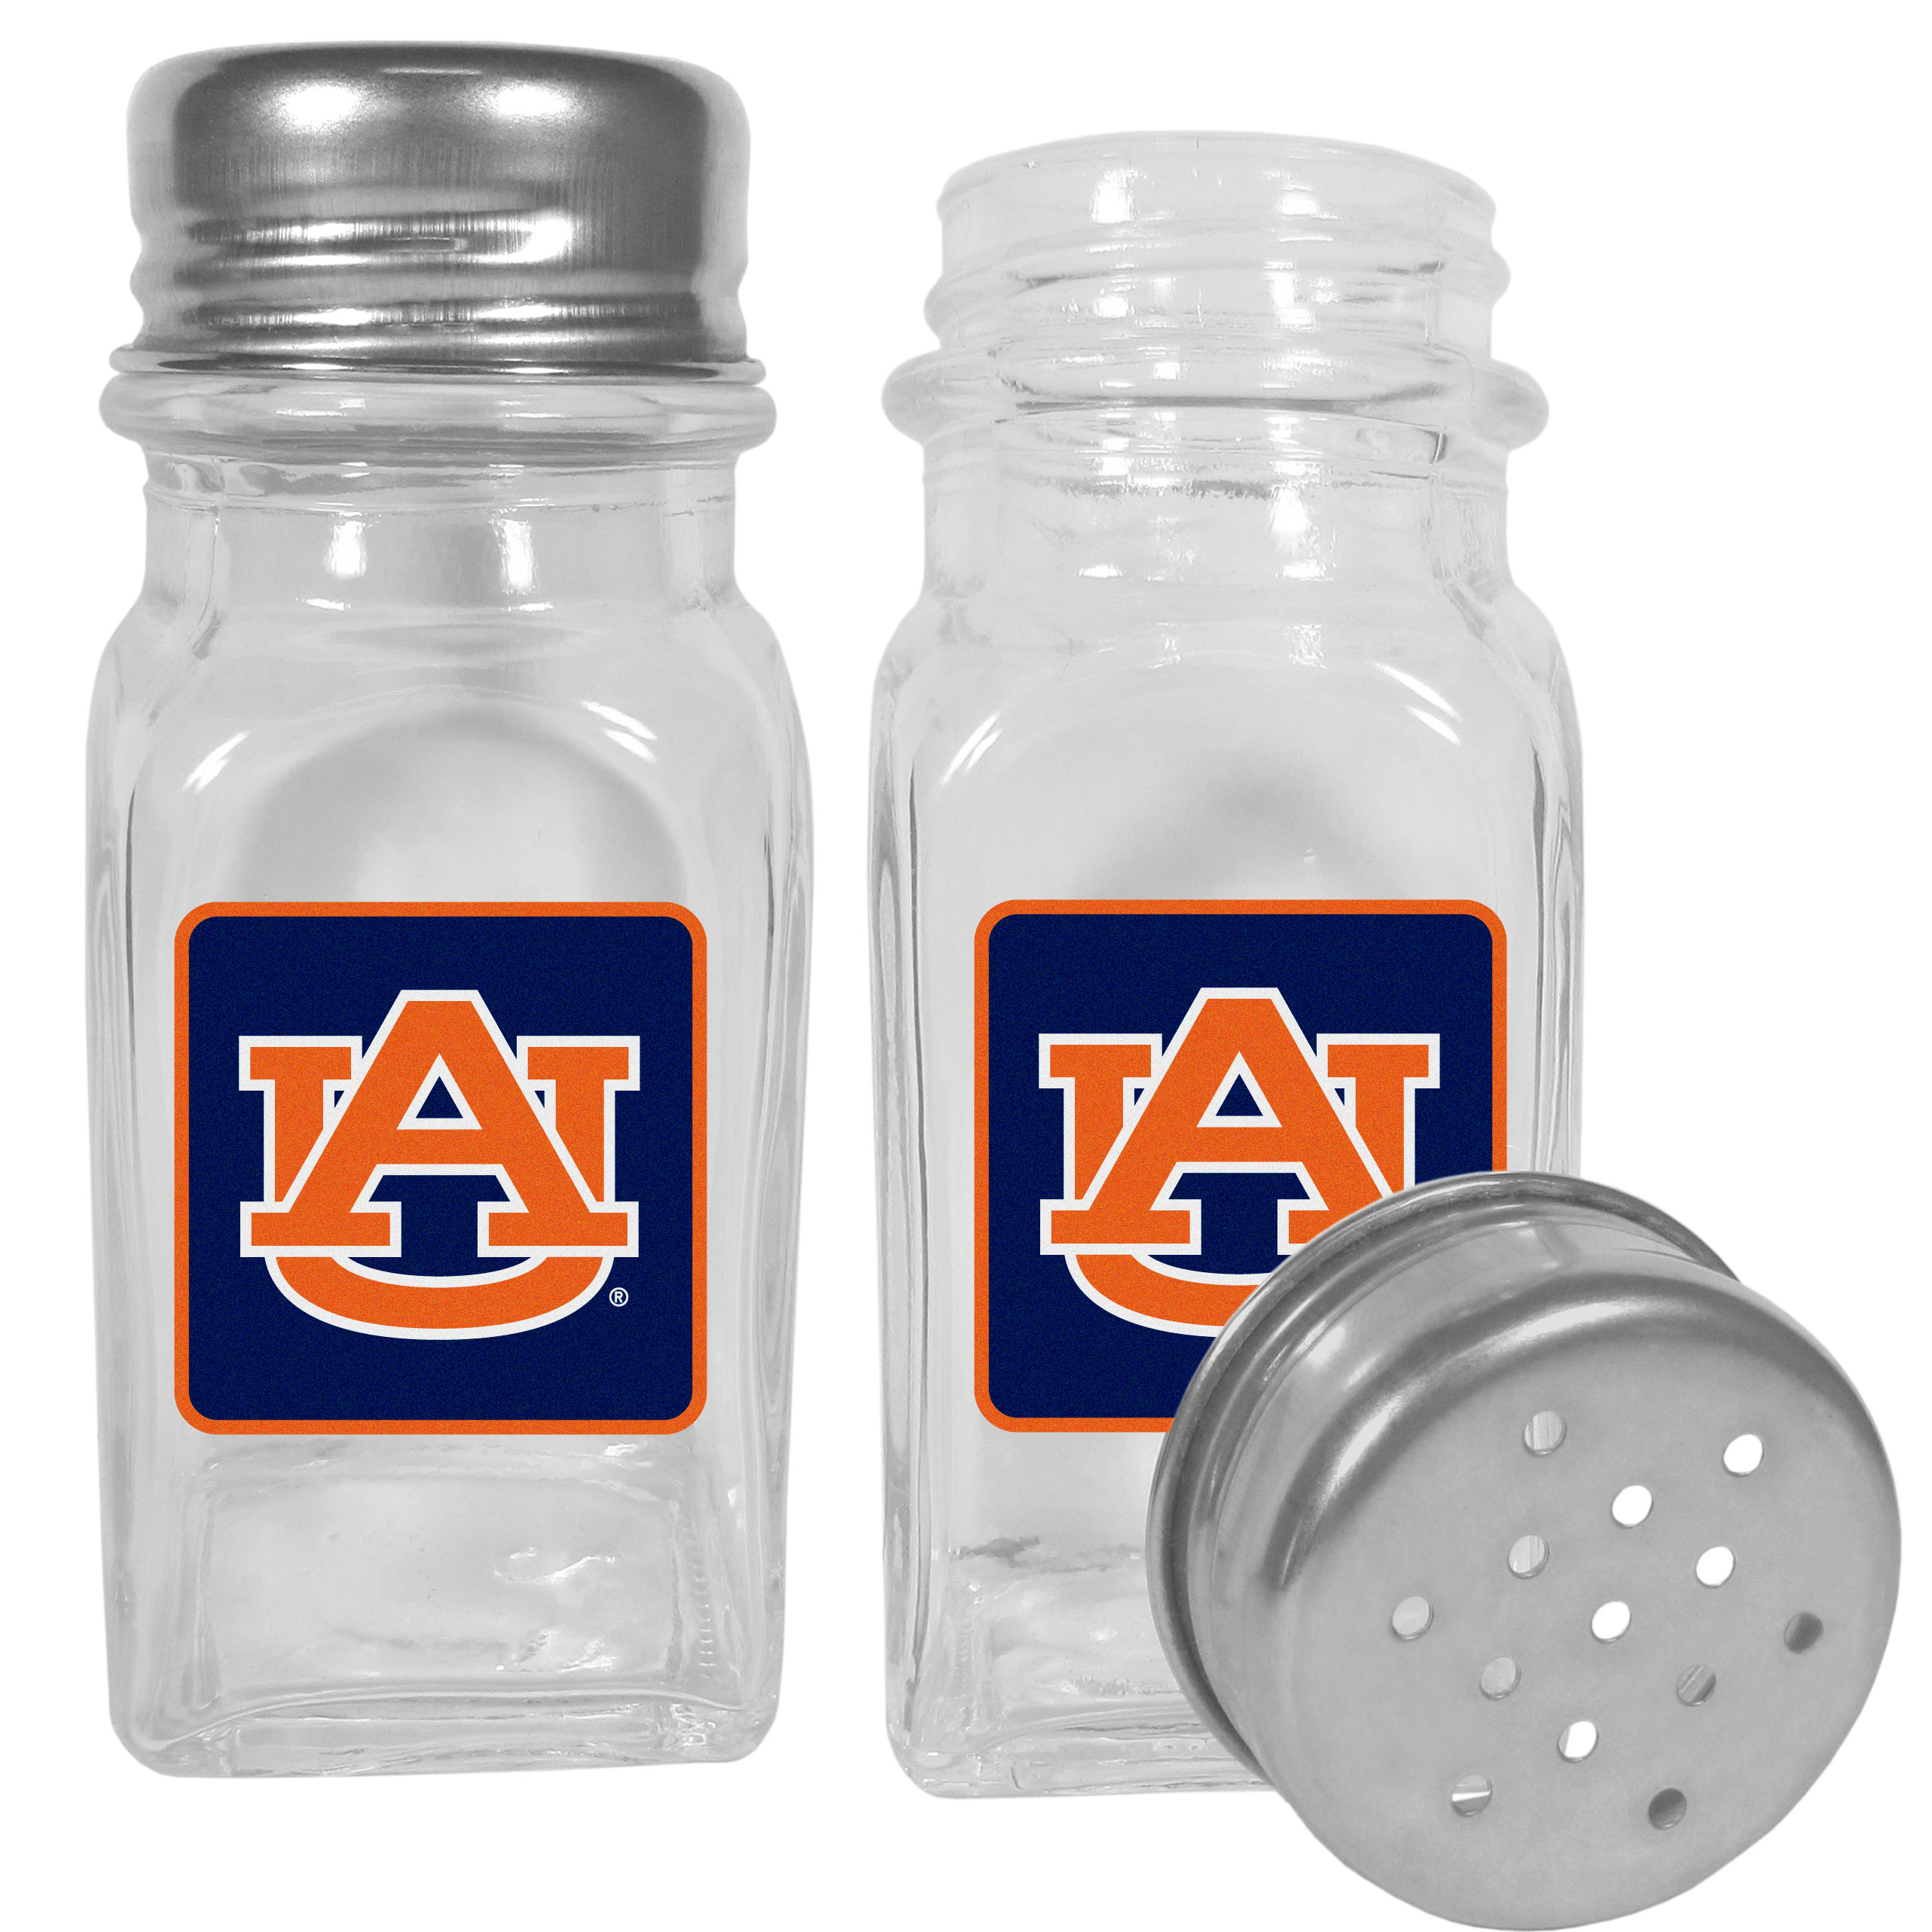 Auburn Tigers Graphics Salt and Pepper Shaker - No tailgate party is complete without your Auburn Tigers salt & pepper shakers featuring bright team logos. The diner replica salt and pepper shakers are glass with screw top lids. These team shakers are a great grill accessory whether you are barbecuing on the patio, picnicing or having a game day party.